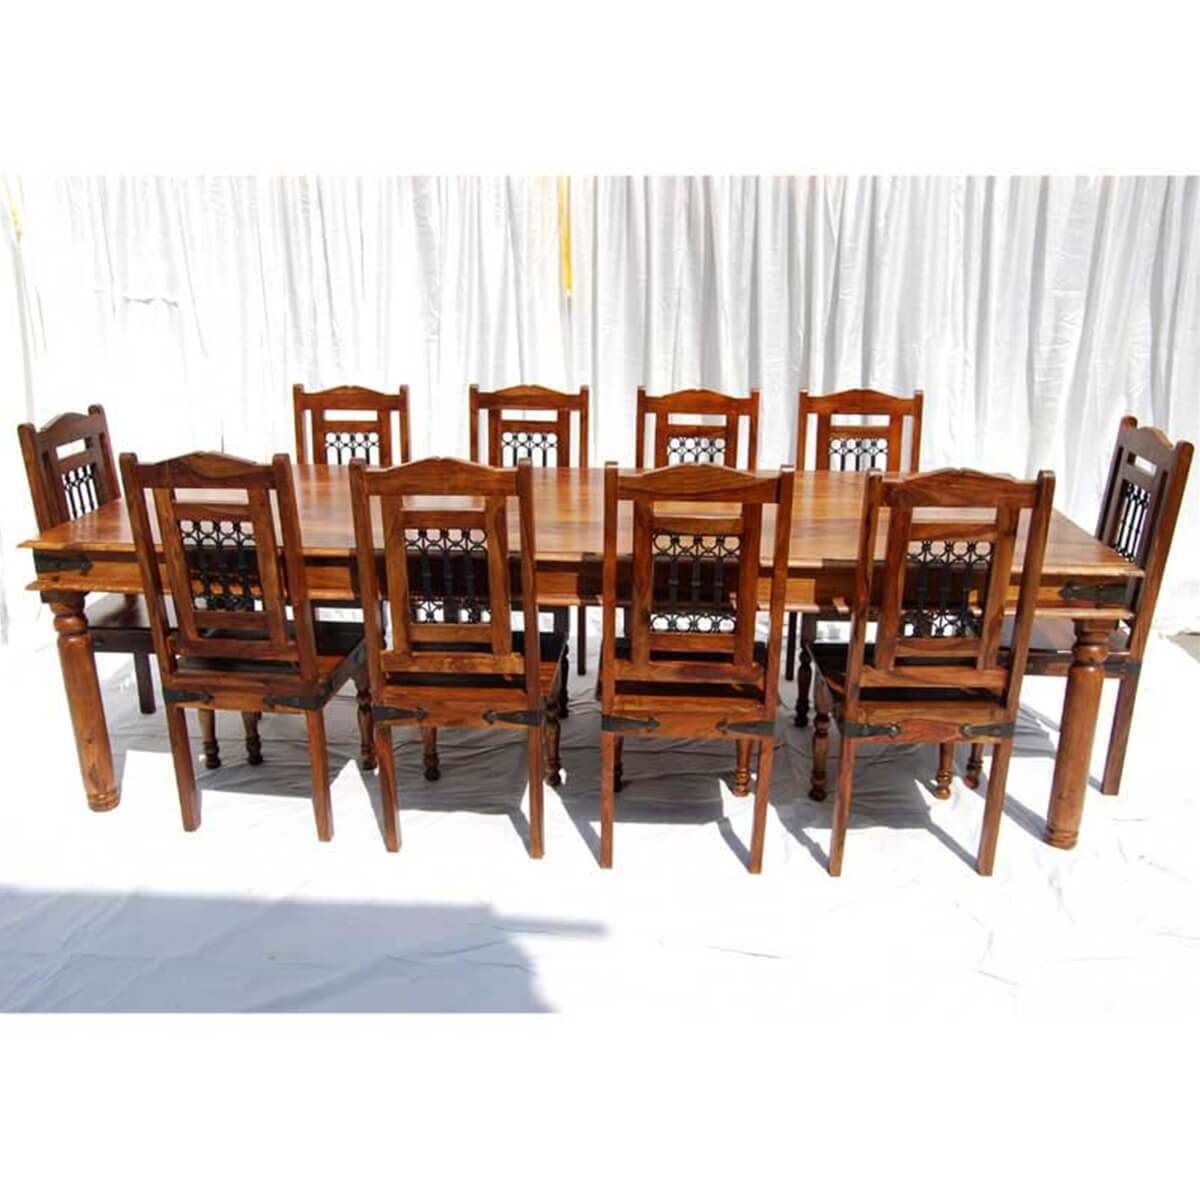 Oversized Dining Chair Solid Wood Large Rustic Dining Room Table Chair Buffet